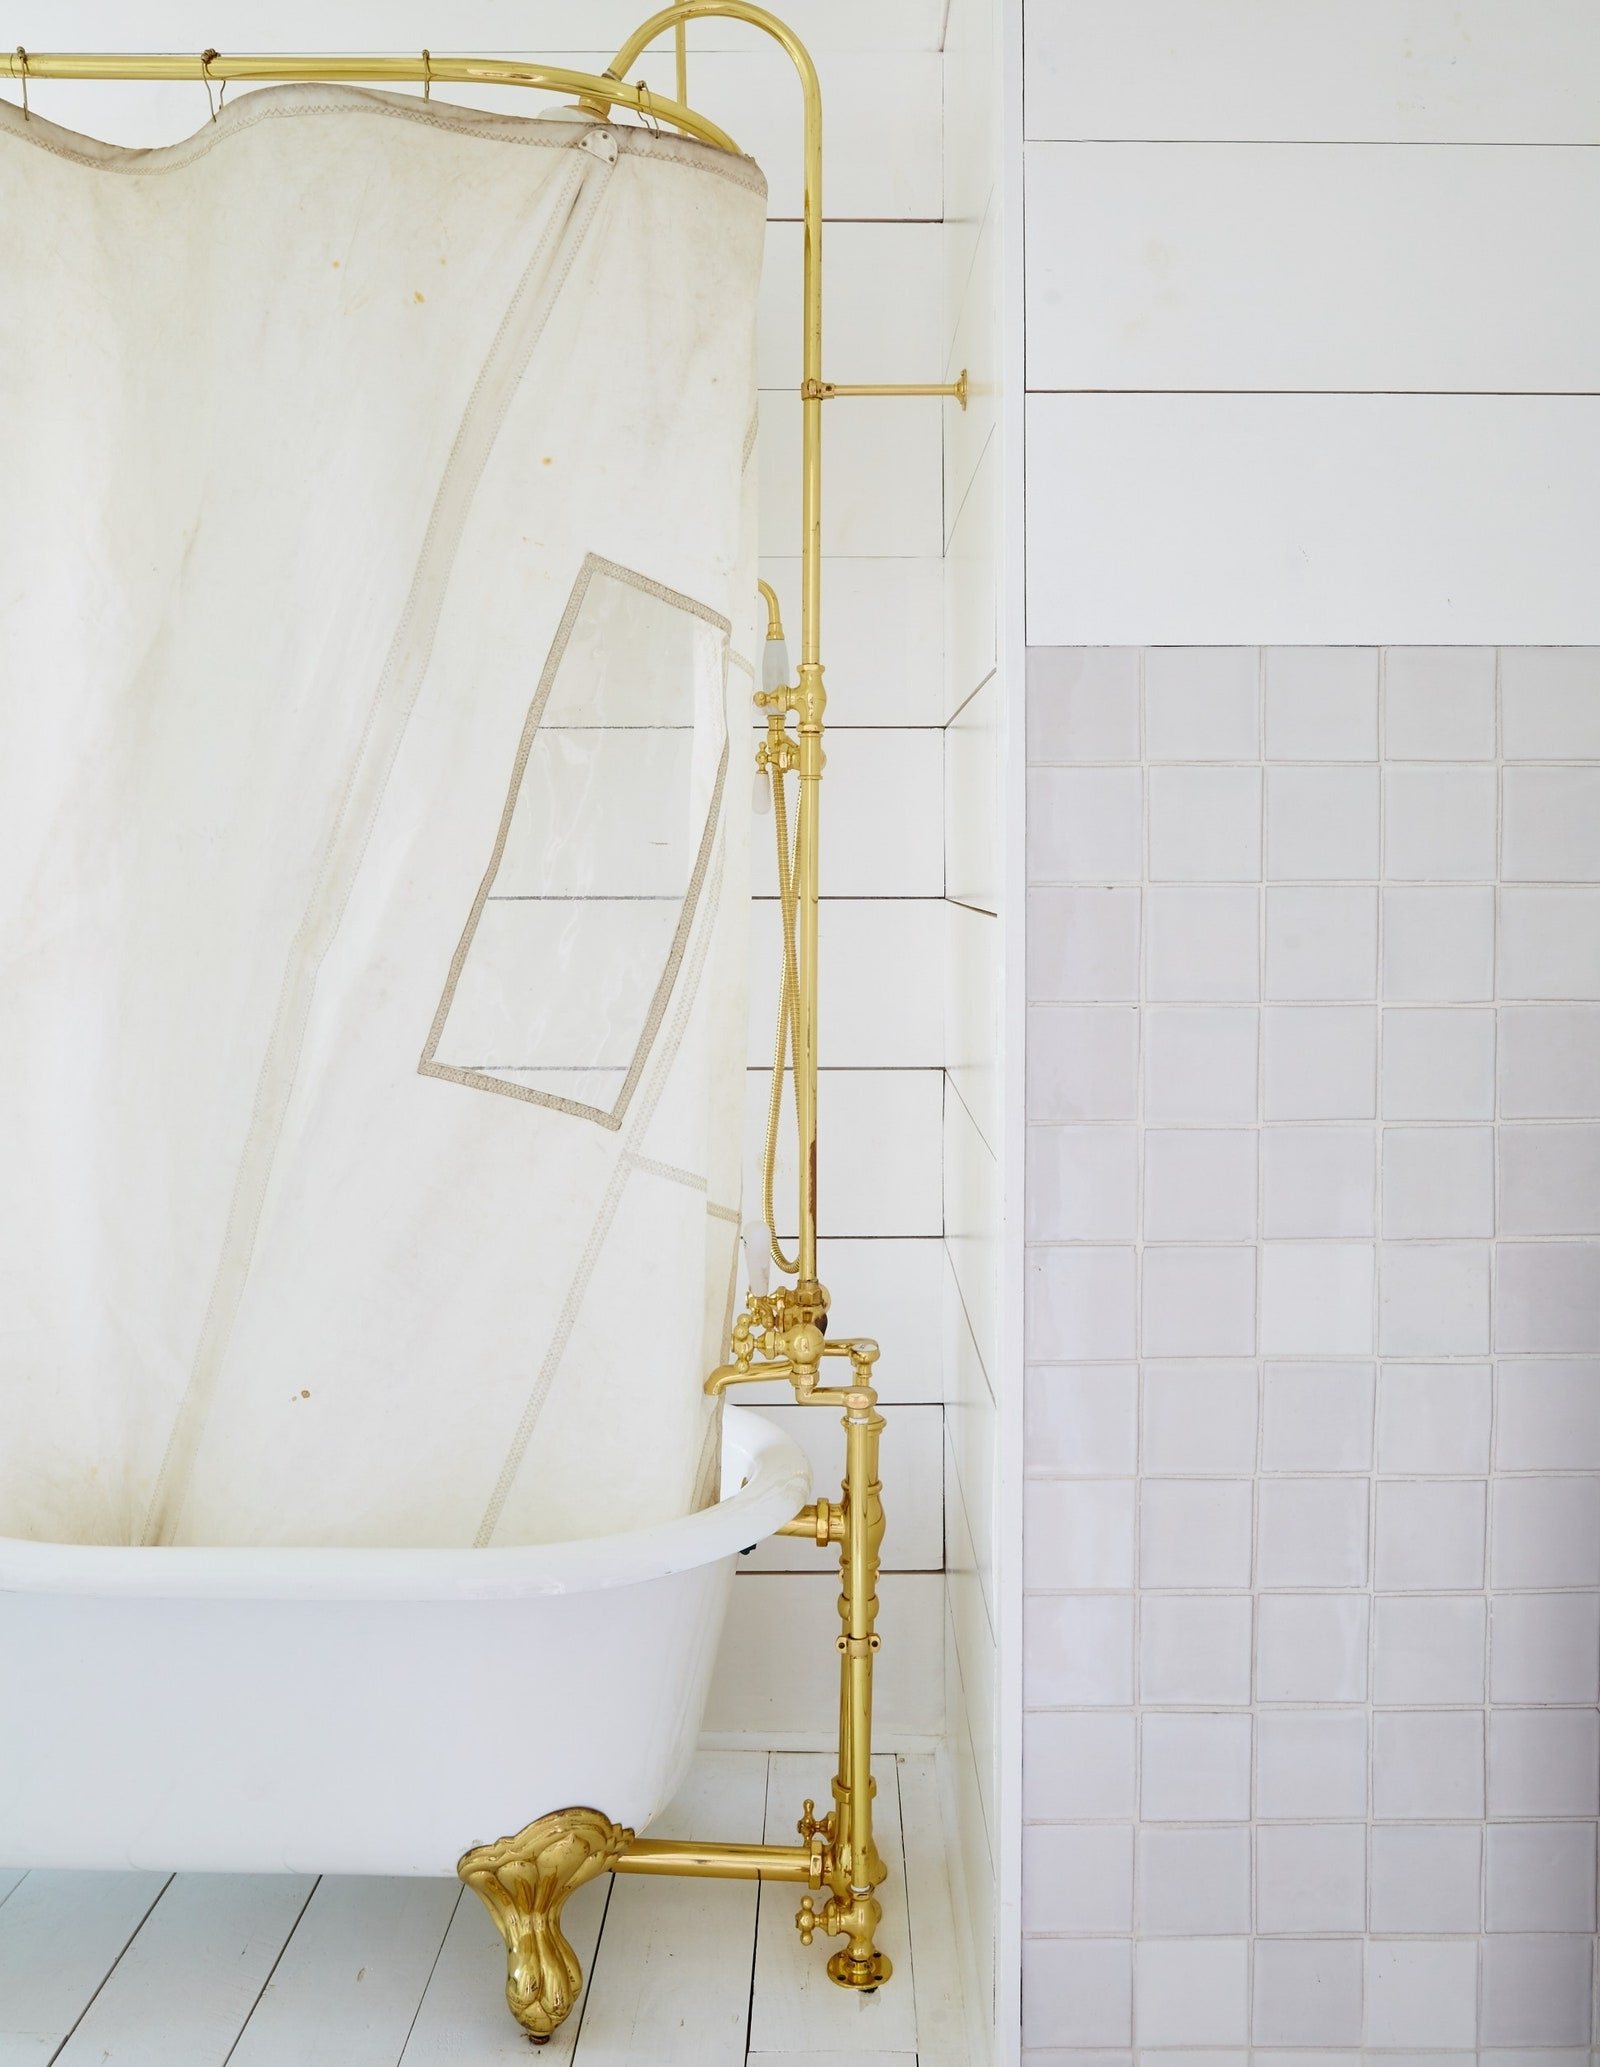 Cast Iron Tub Tips: Sourcing And Restoring An Antique Cast Iron Tub Bathroom Design